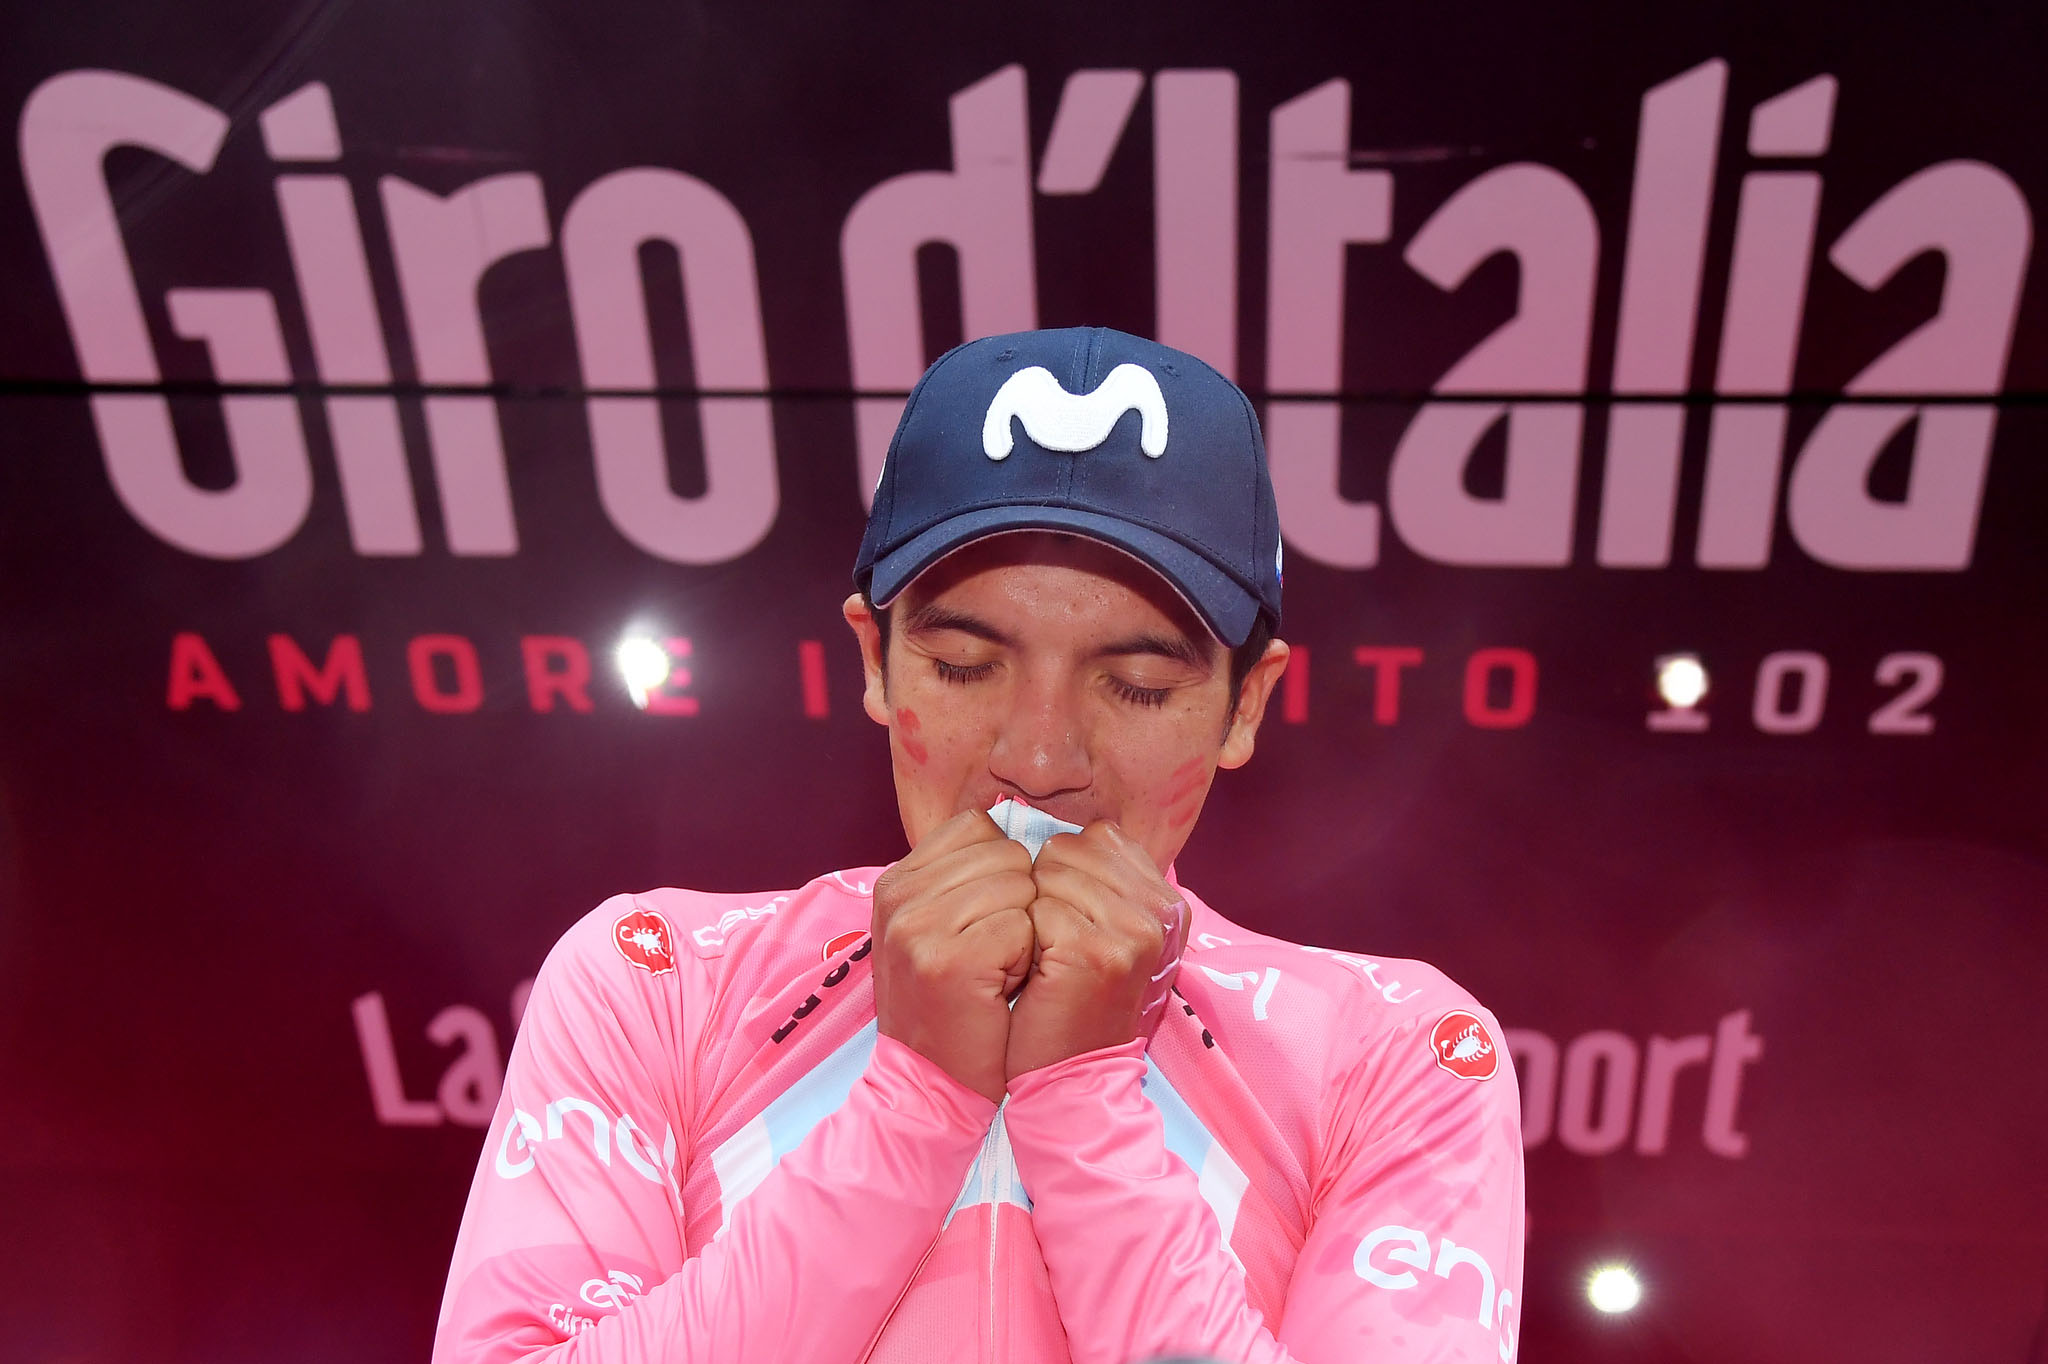 Foto Gian Mattia D'Alberto - LaPresse 25-05-2019 COURMAYEUR (Italia) Sport Ciclismo Giro d'Italia 2019 - edizione 102-  tappa 14 SAINT-VINCENT COURMAYEUR (SKYWAY MONTE BIANCO) km 131 Nella foto: Richard Carapaz (Movistar Team), vincitore di tappa e maglia rosaPhoto Gian Mattia D'Alberto - LaPresse 2019-05-25  COURMAYEUR (Italy) Sport Cycling Giro d'Italia 2019 - 102th edition -  stage 14 SAINT-VINCENT COURMAYEUR (SKYWAY MONTE BIANCO) km 131 In the pic: Richard Carapaz (Movistar Team), winner of the stage and pink jersey